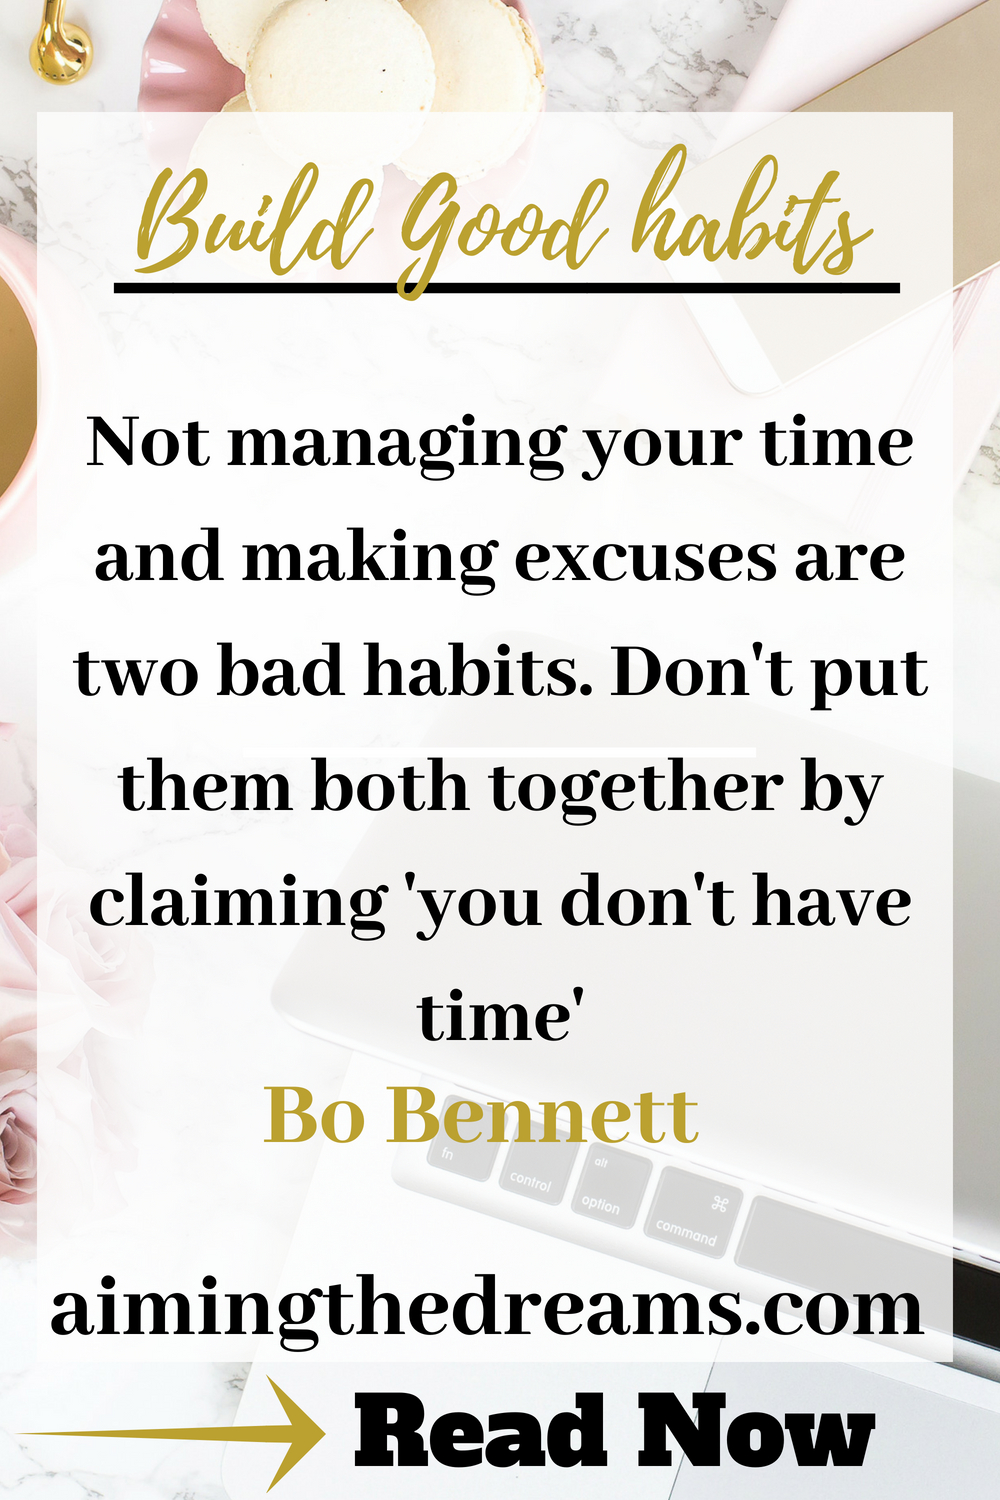 Breaking bad habits and building your self discipline takes time . It can be done. You just need to be always motivated enough to work on your own self. Bad habits can be replaced with good habits.